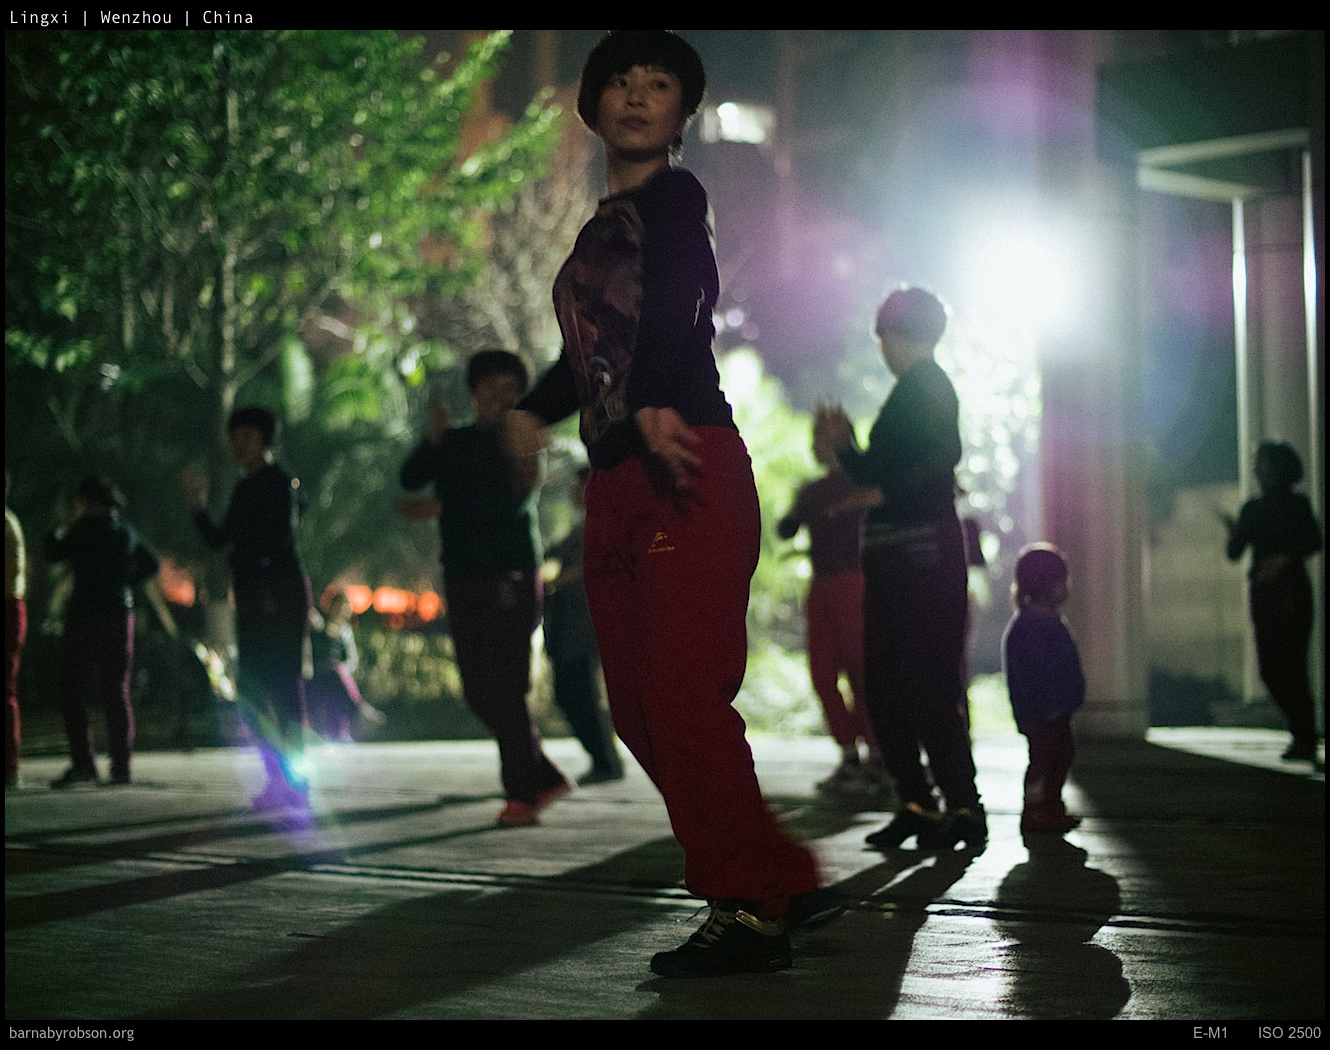 dancing ladies of Wenzhou (1 of 2) - [Lingxi, Wenzhou series]